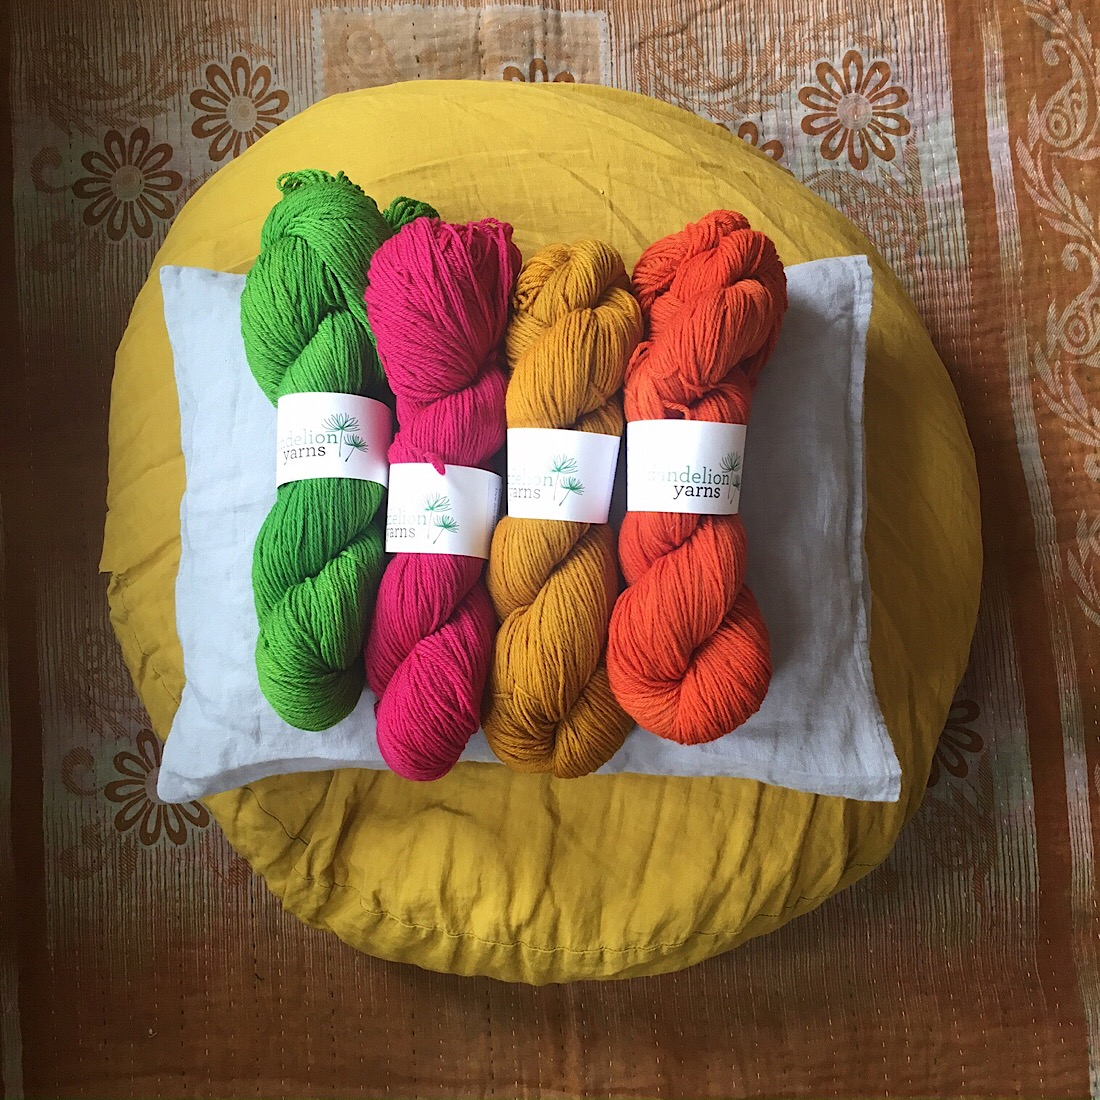 Dandelion yarn at Loop London